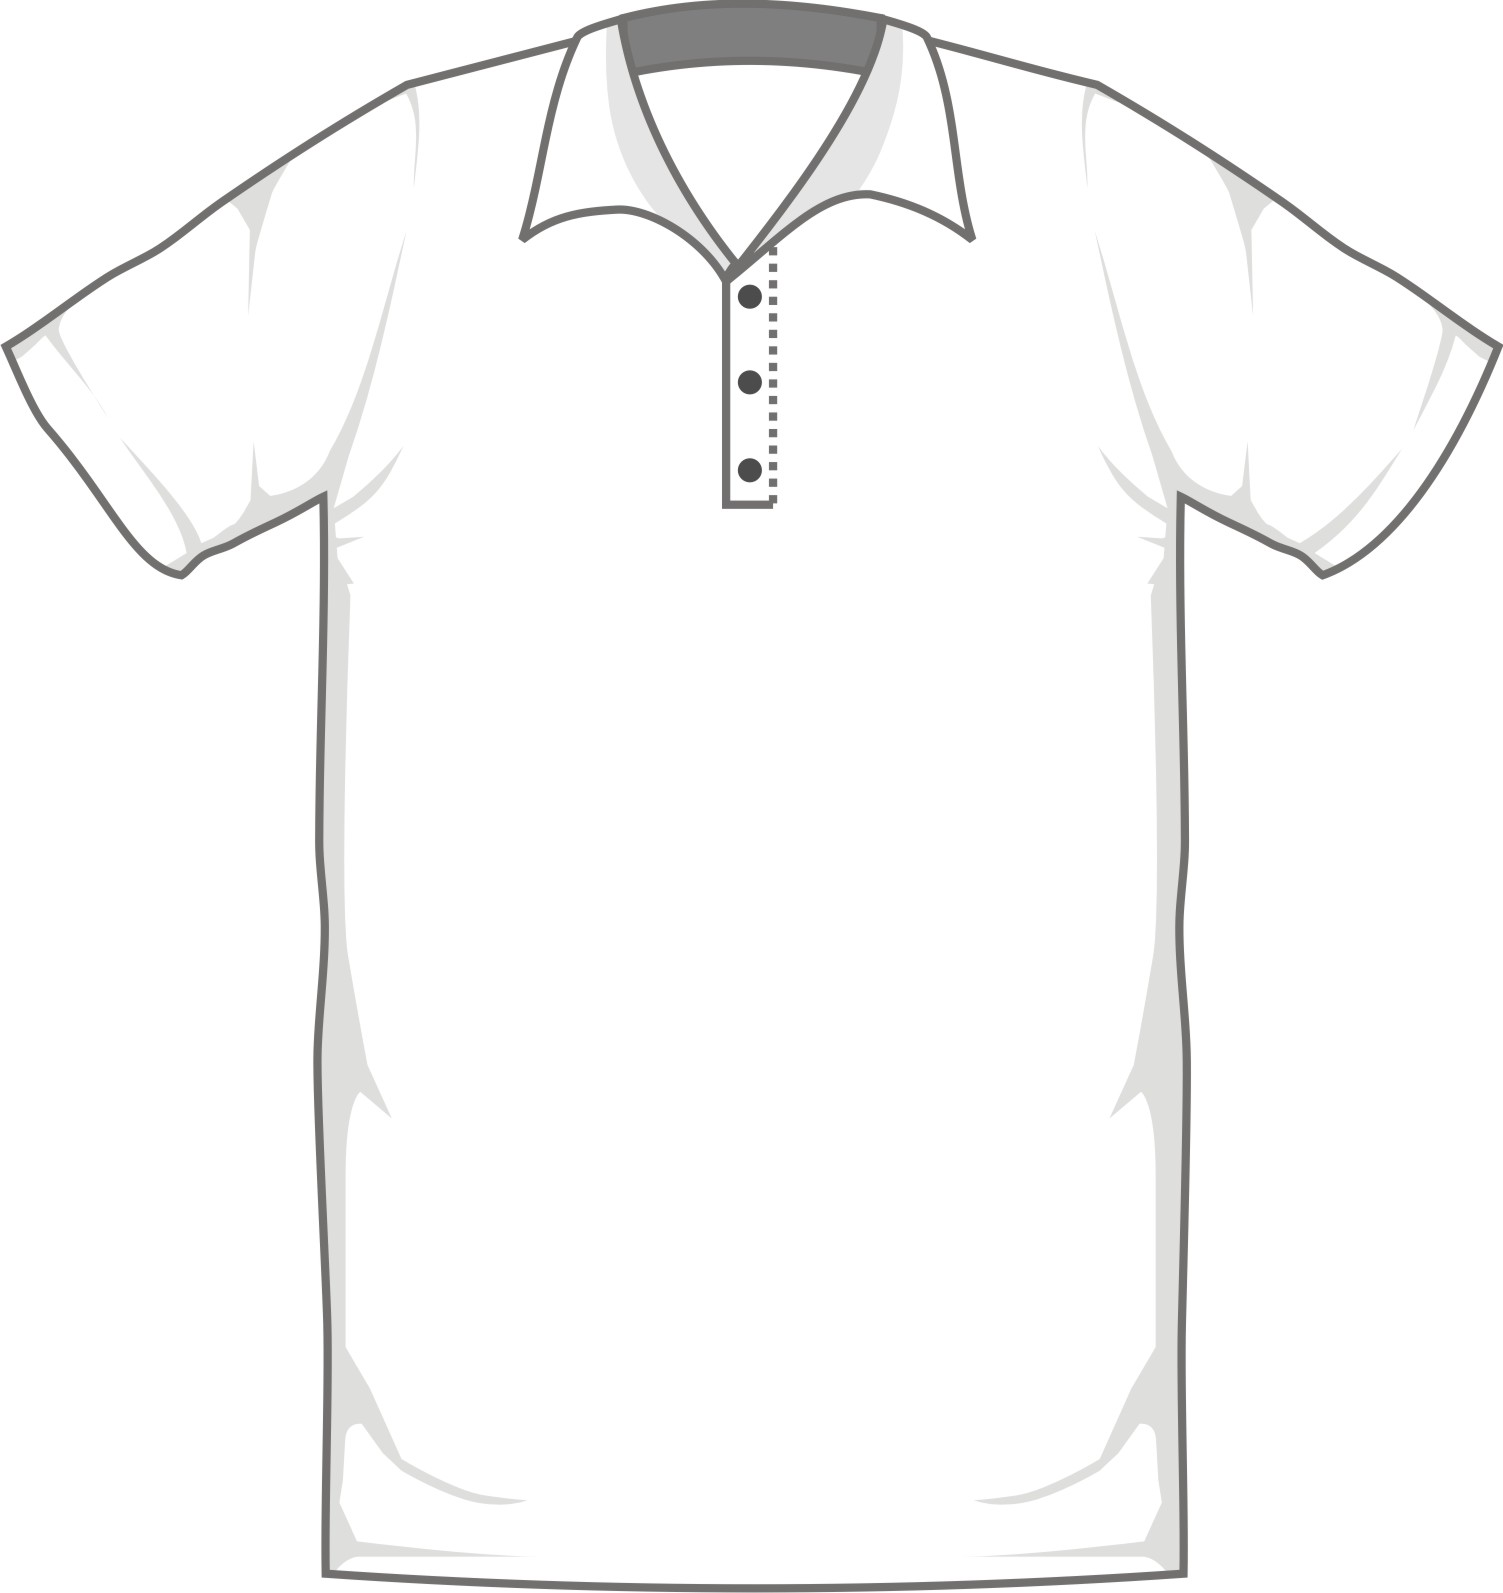 Polo T Shirt Mock Up Template  Designertale